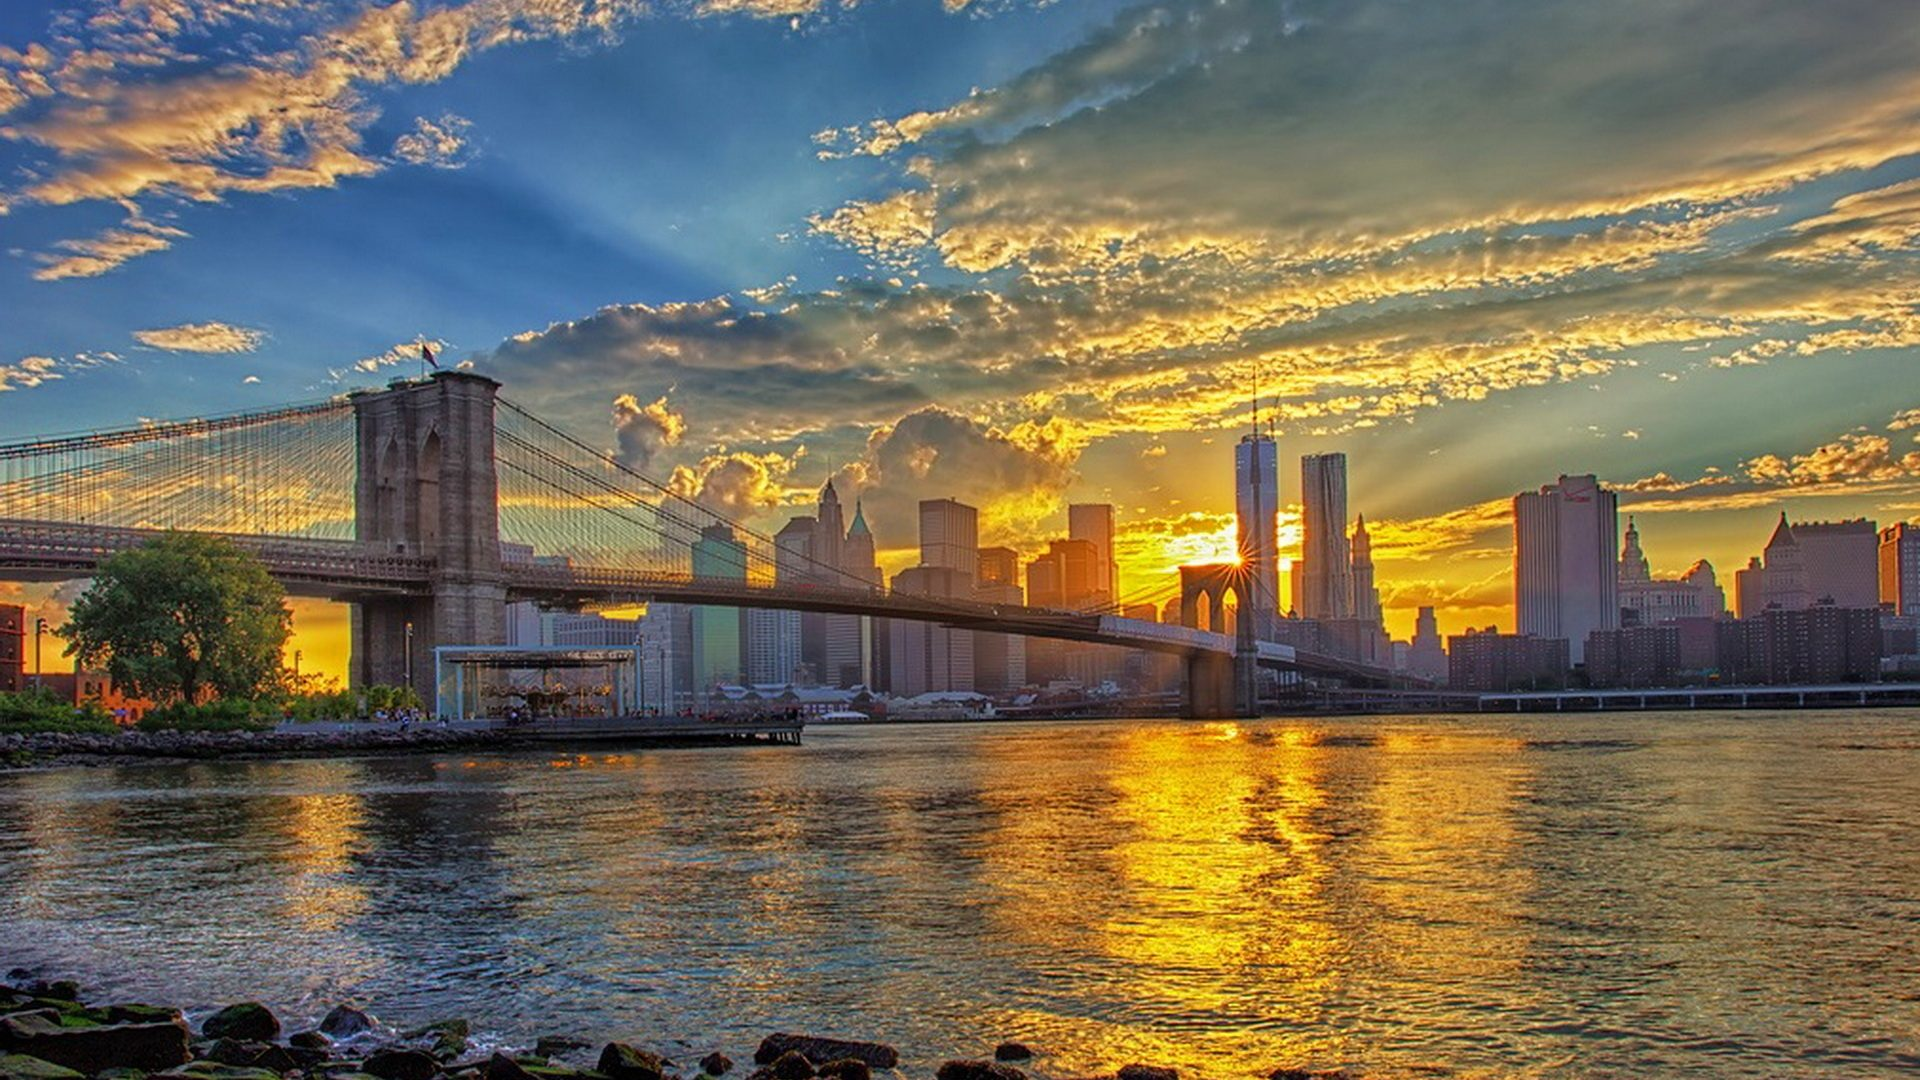 Iphone X Wallpaper Gif Landscape Bridges Brooklyn Bridge Sunrise Beautiful New York Sky